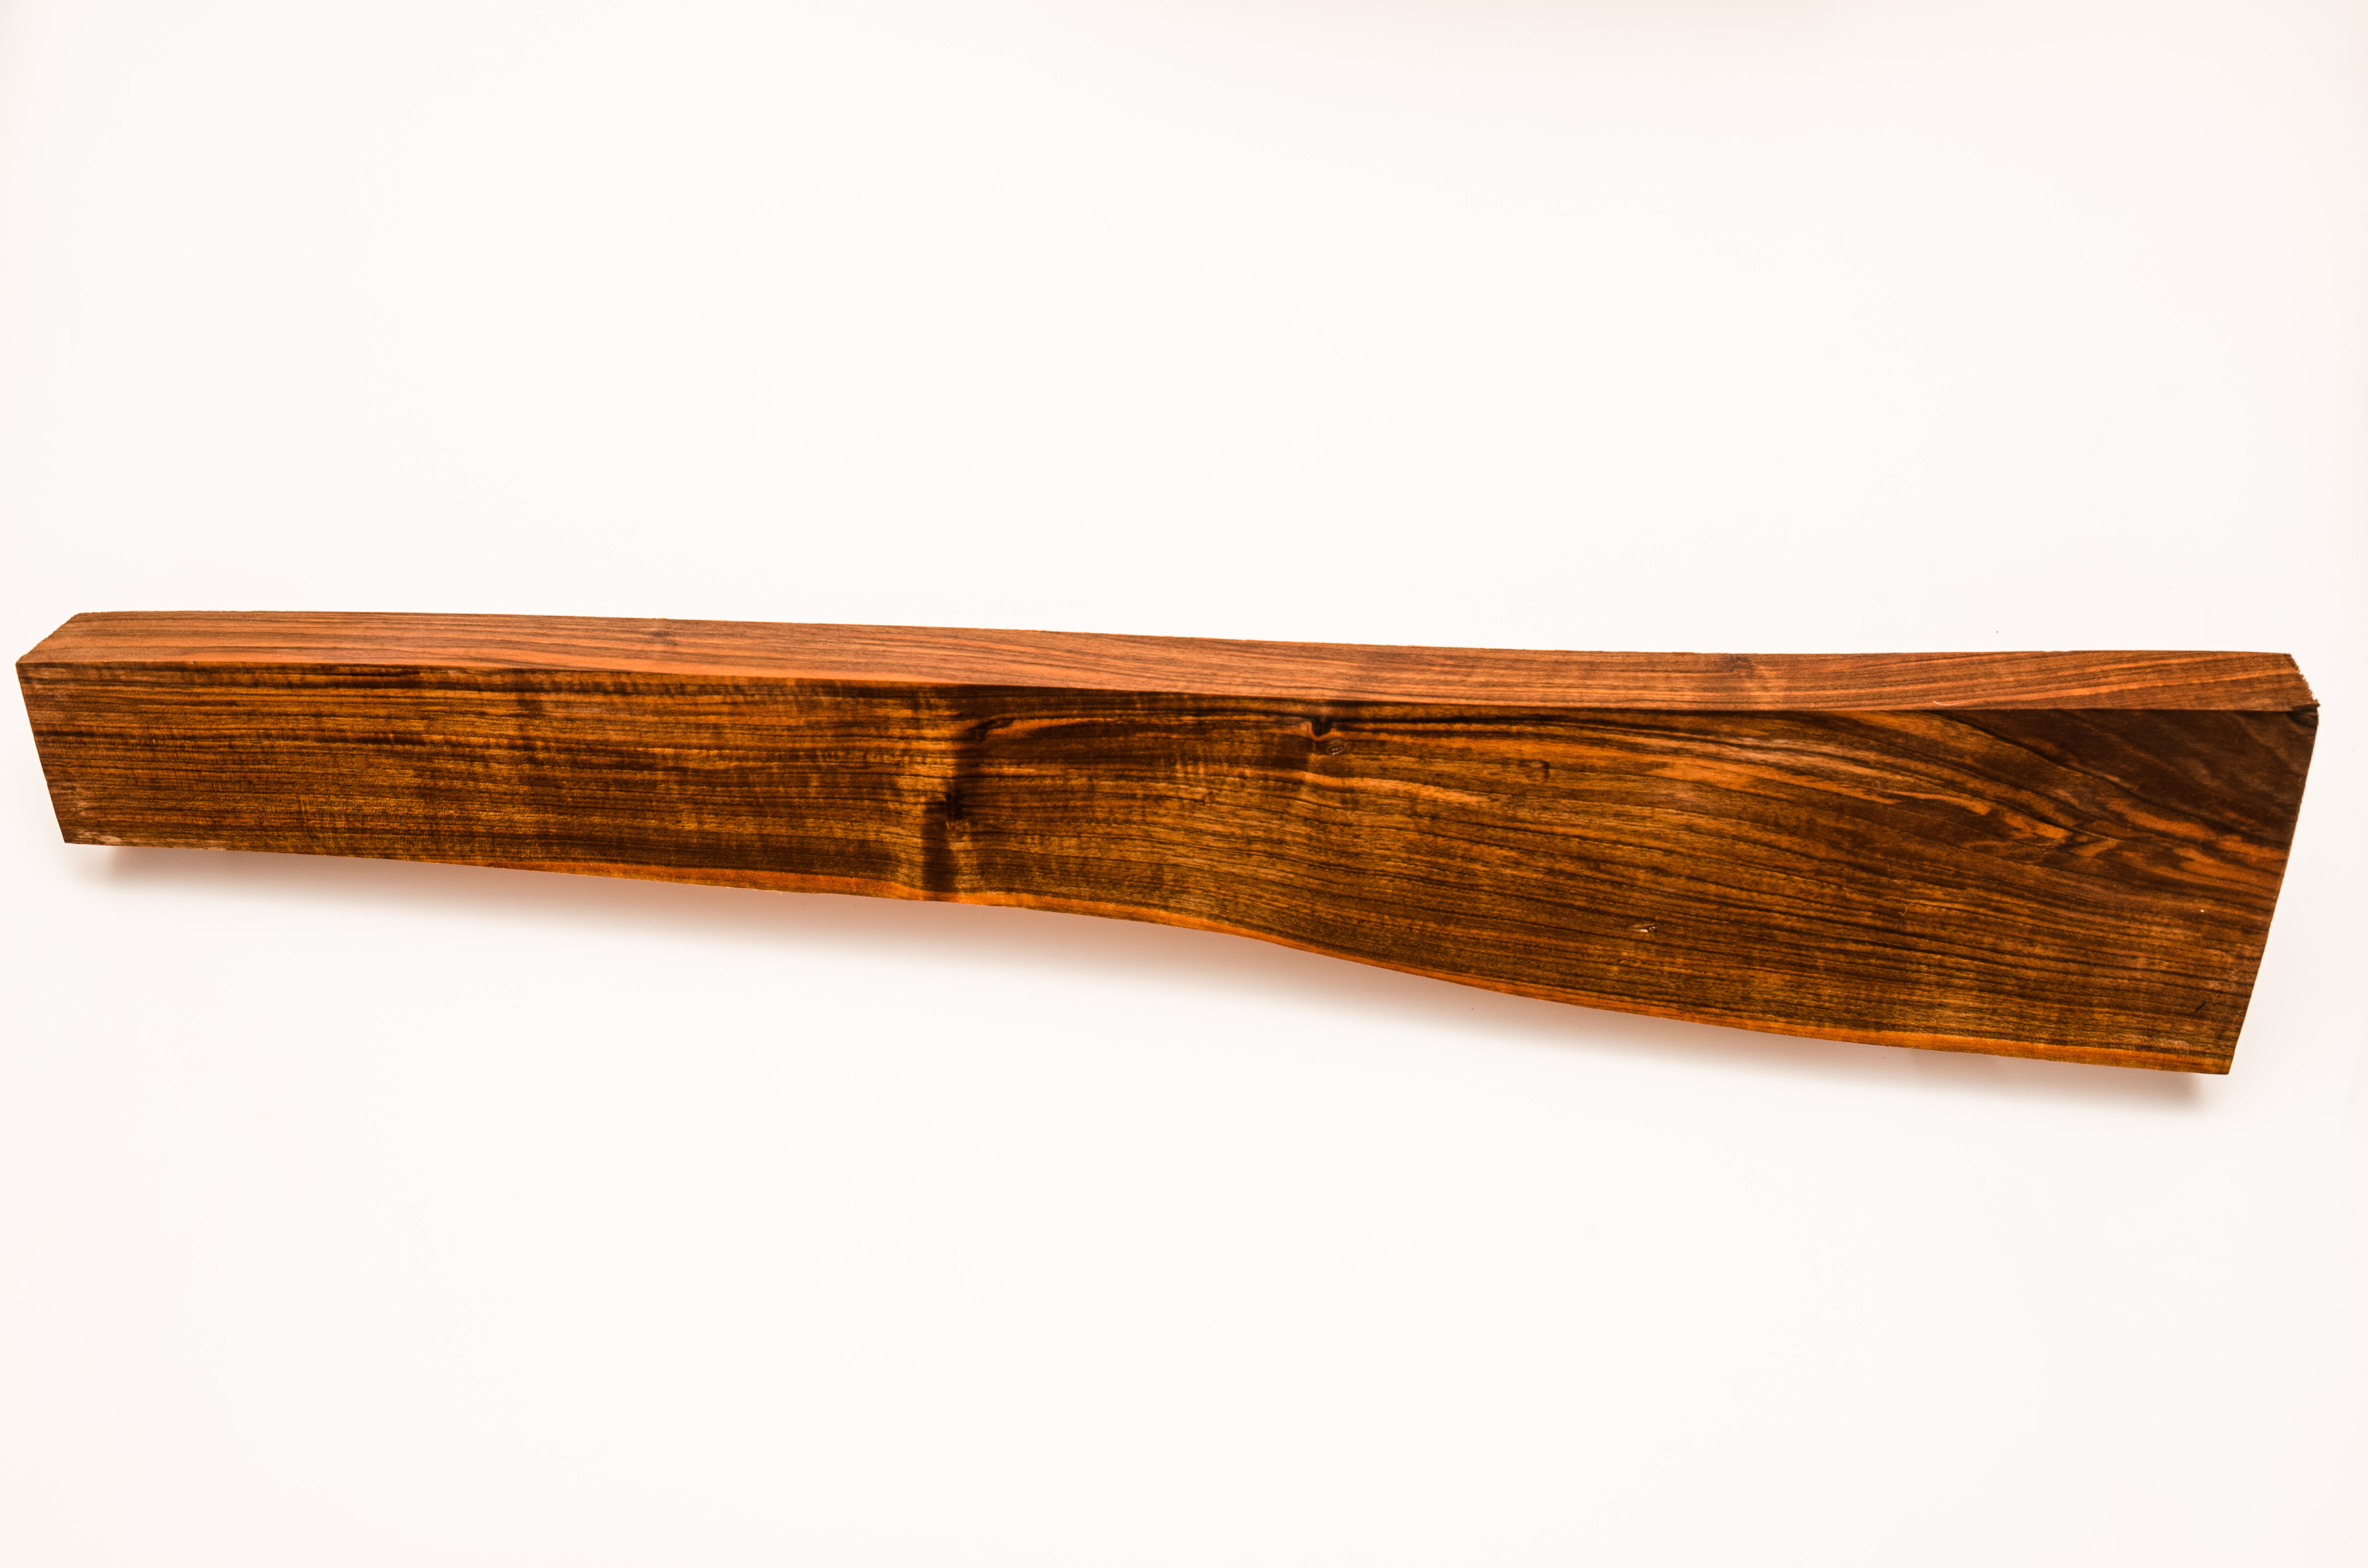 walnut_stock_blanks_for_guns_and_rifles-1611